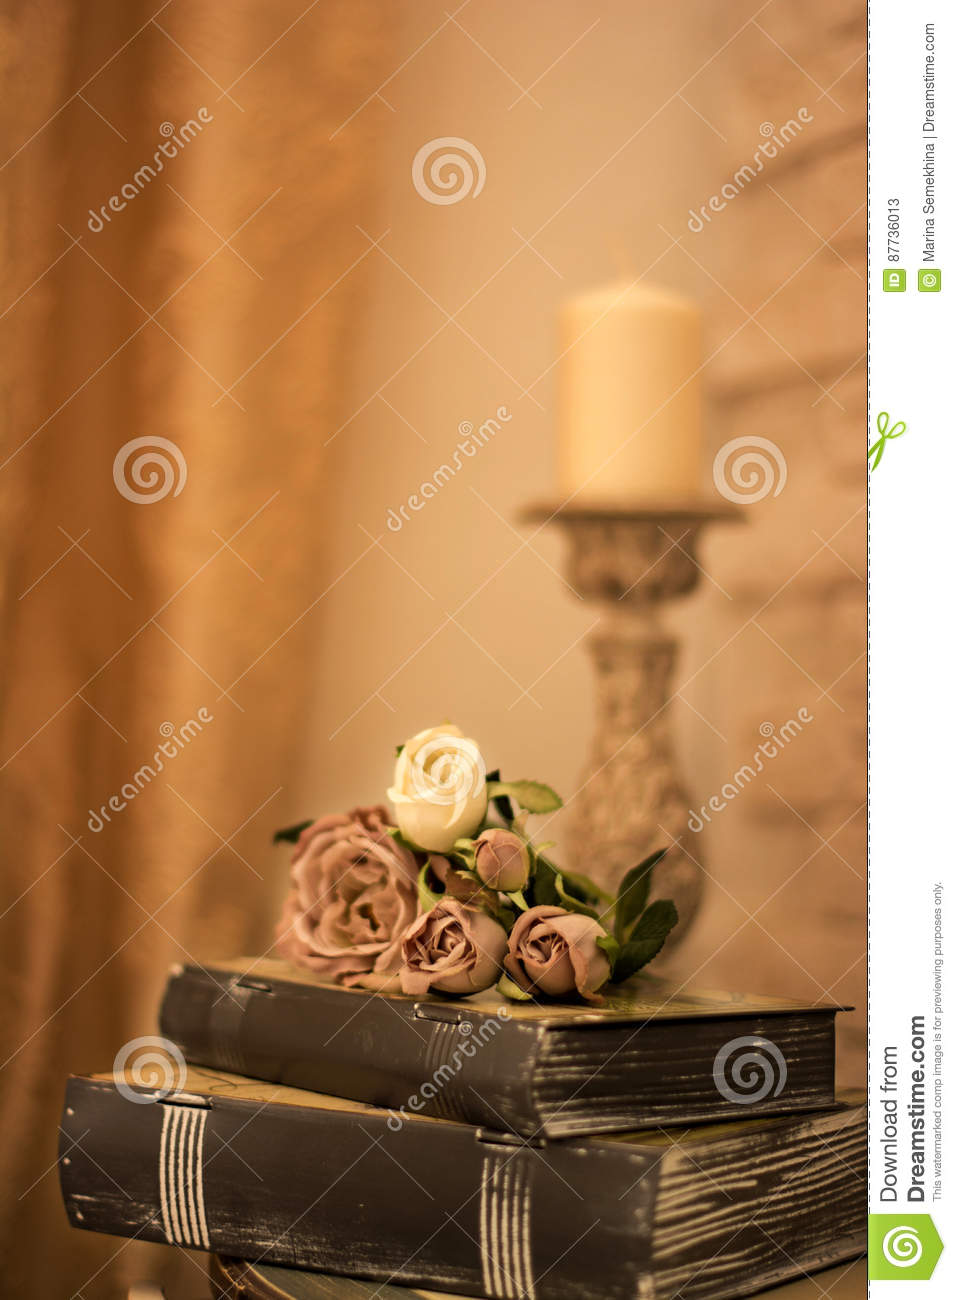 Vintage interior with a table with a vase and flovers and candles.